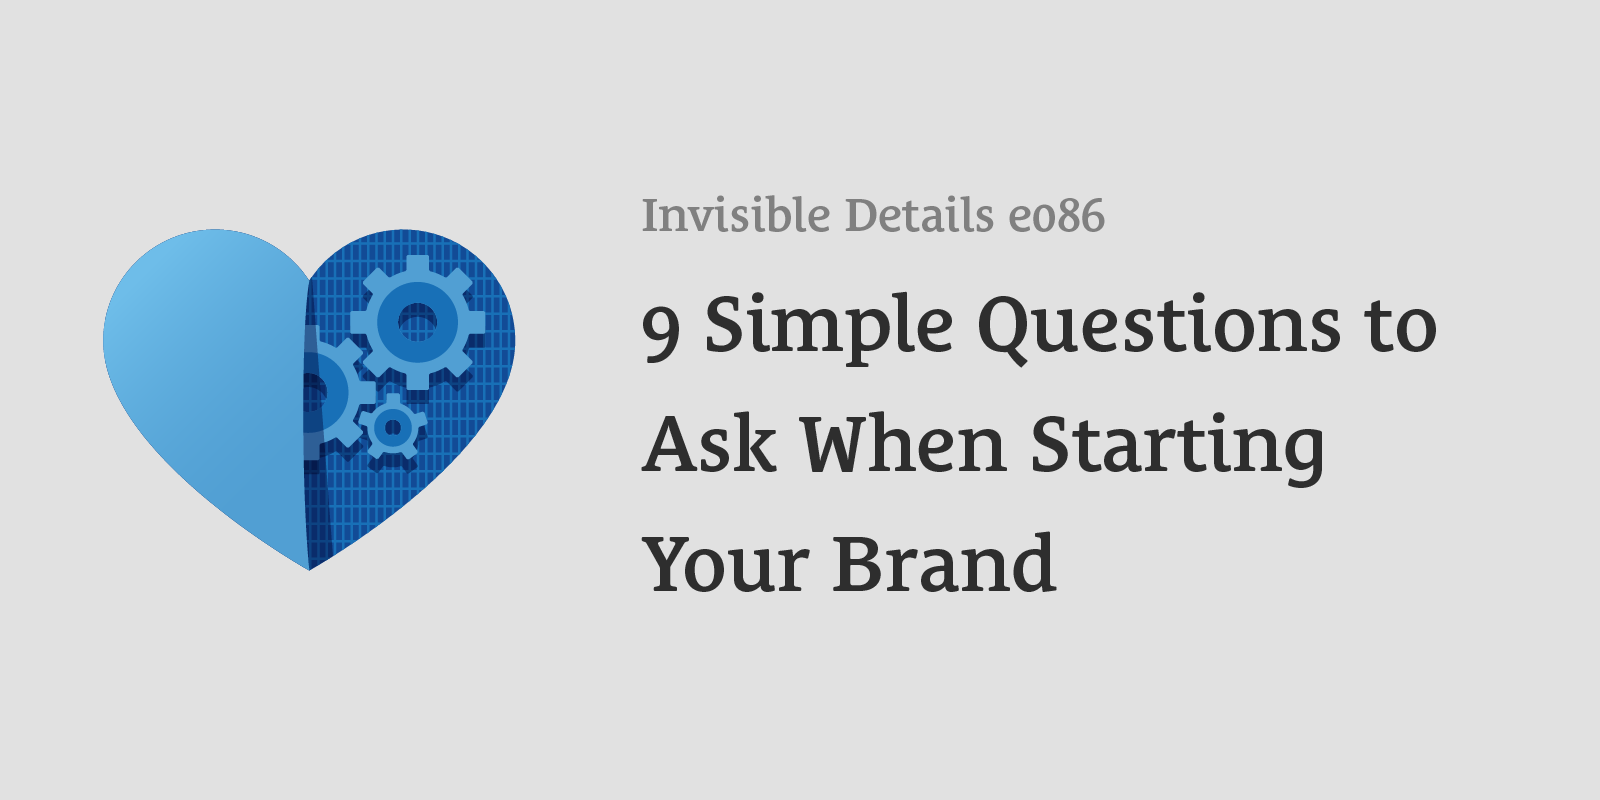 9 Simple Questions to Ask When Starting Your Brand